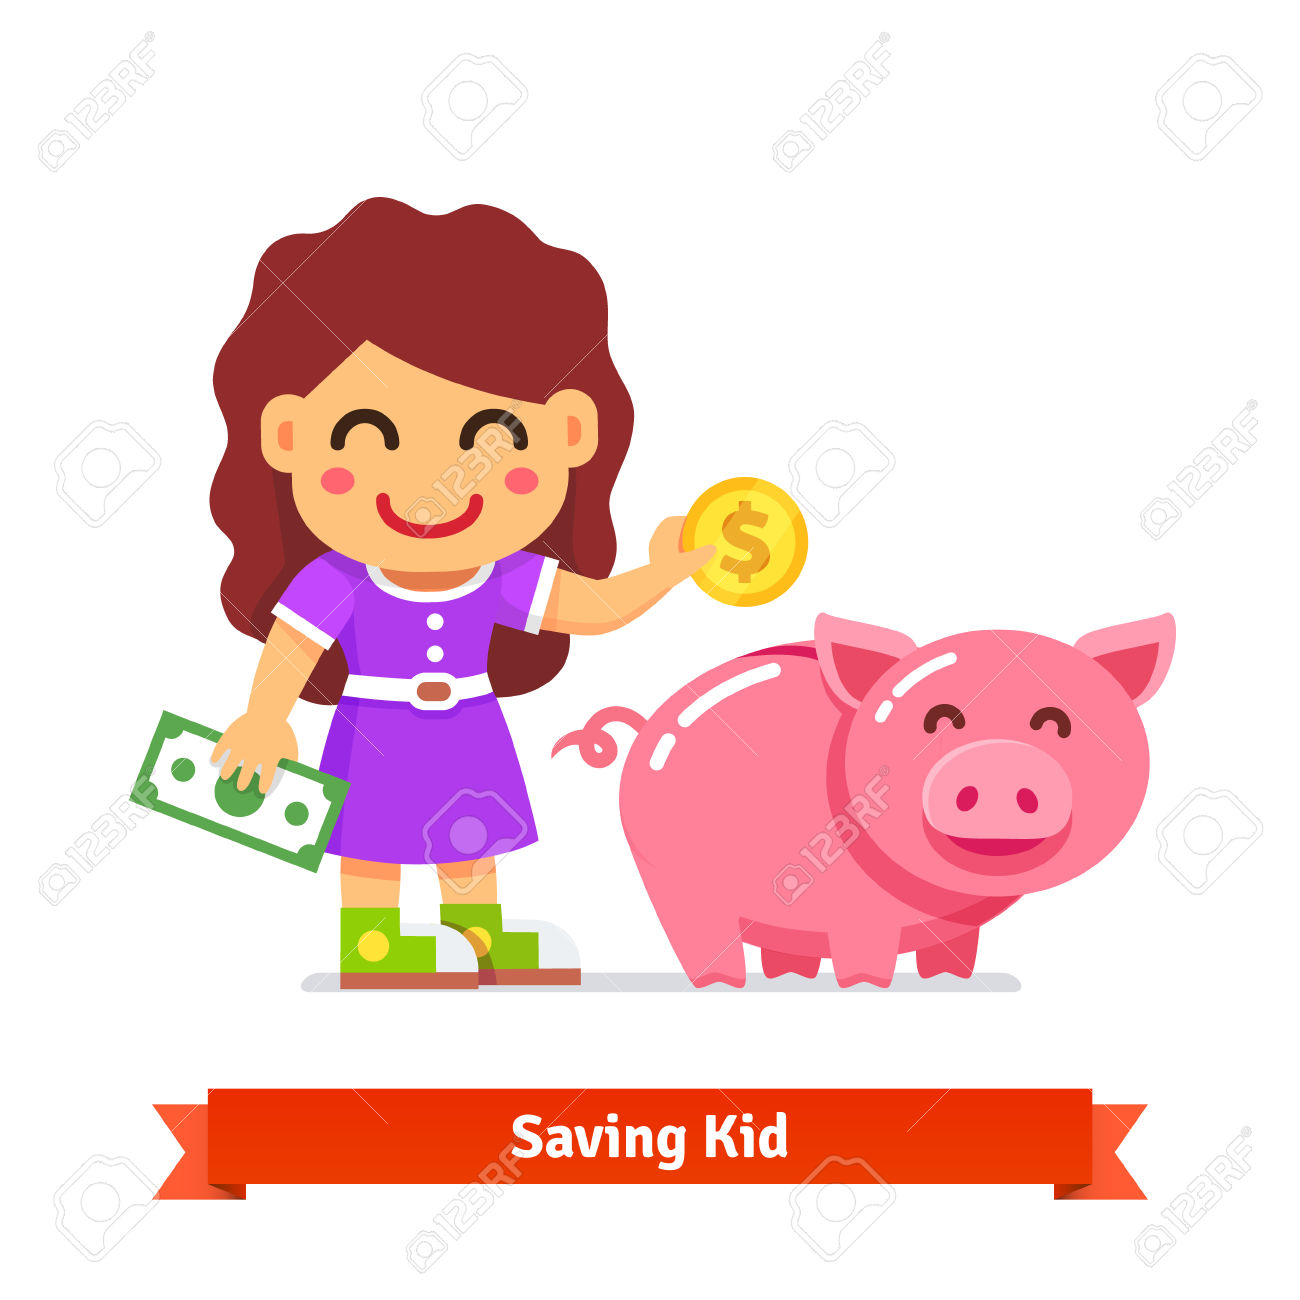 Piggy bank clipart kids saving svg black and white download Kid Saving Money In A Big Piggy Bank. Children Finances And ... svg black and white download